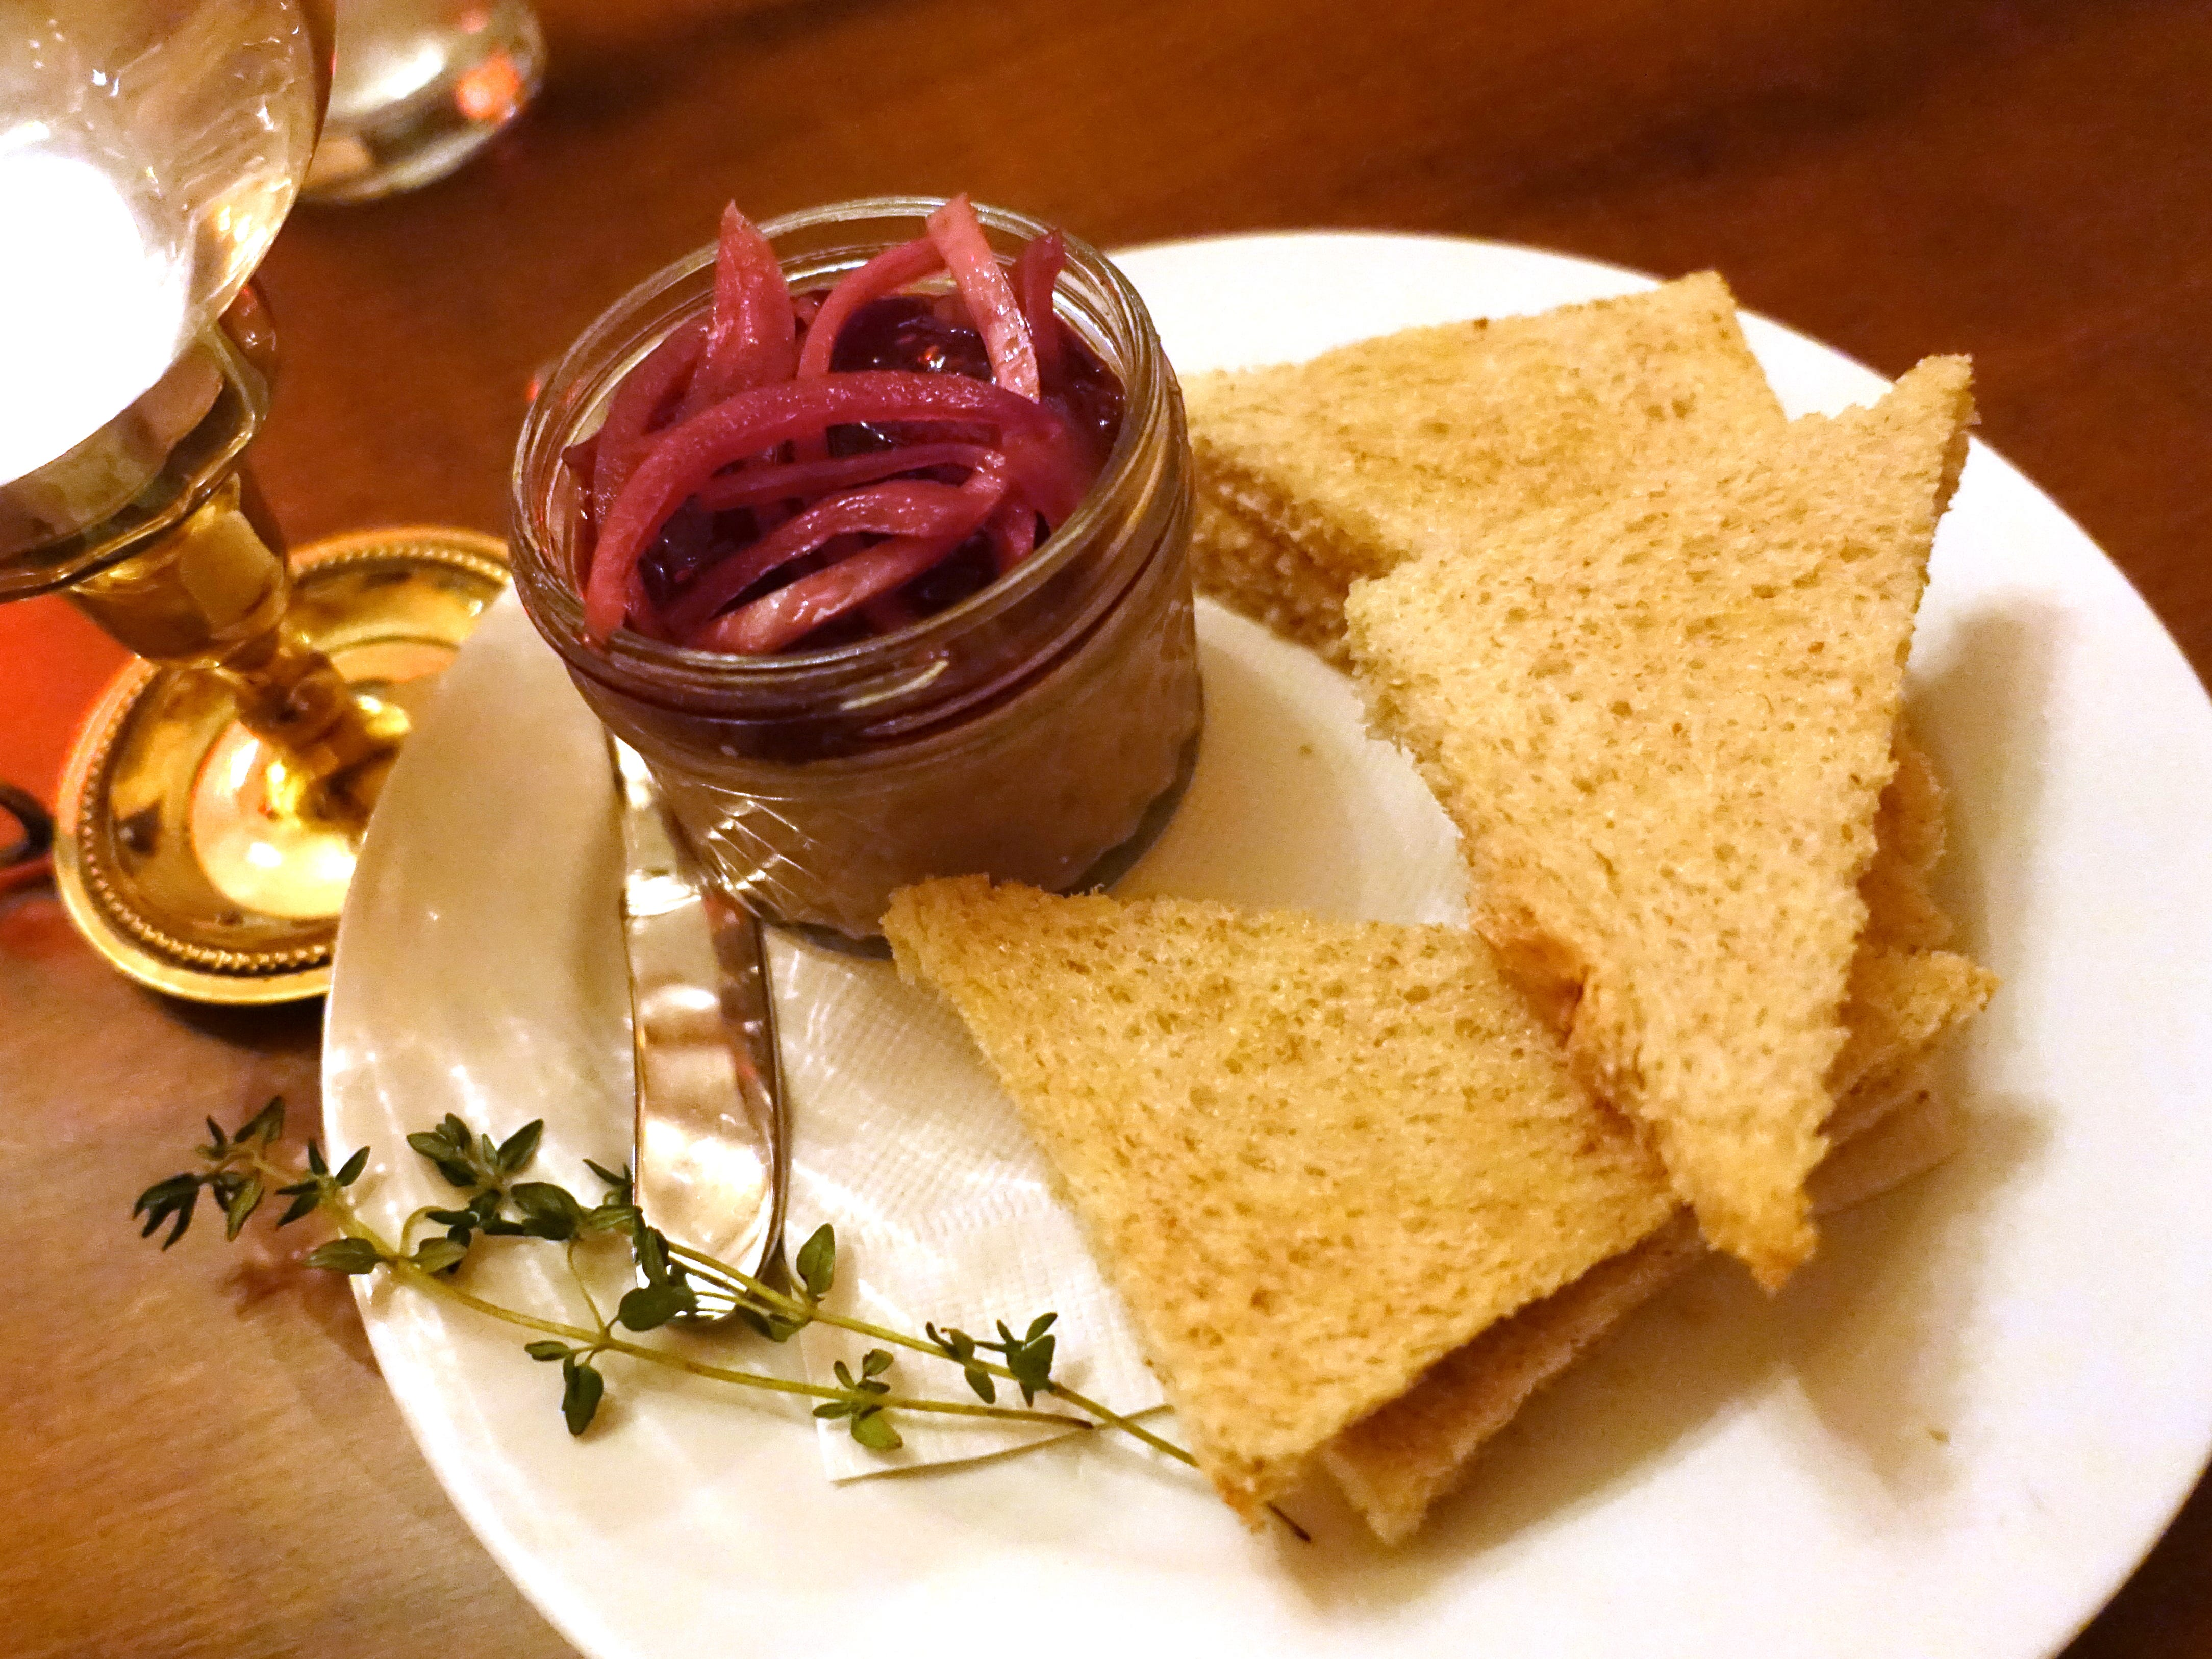 Brandied chicken paté with raspberry jam, pickled onion and toast points at The Farish House in Phoenix.